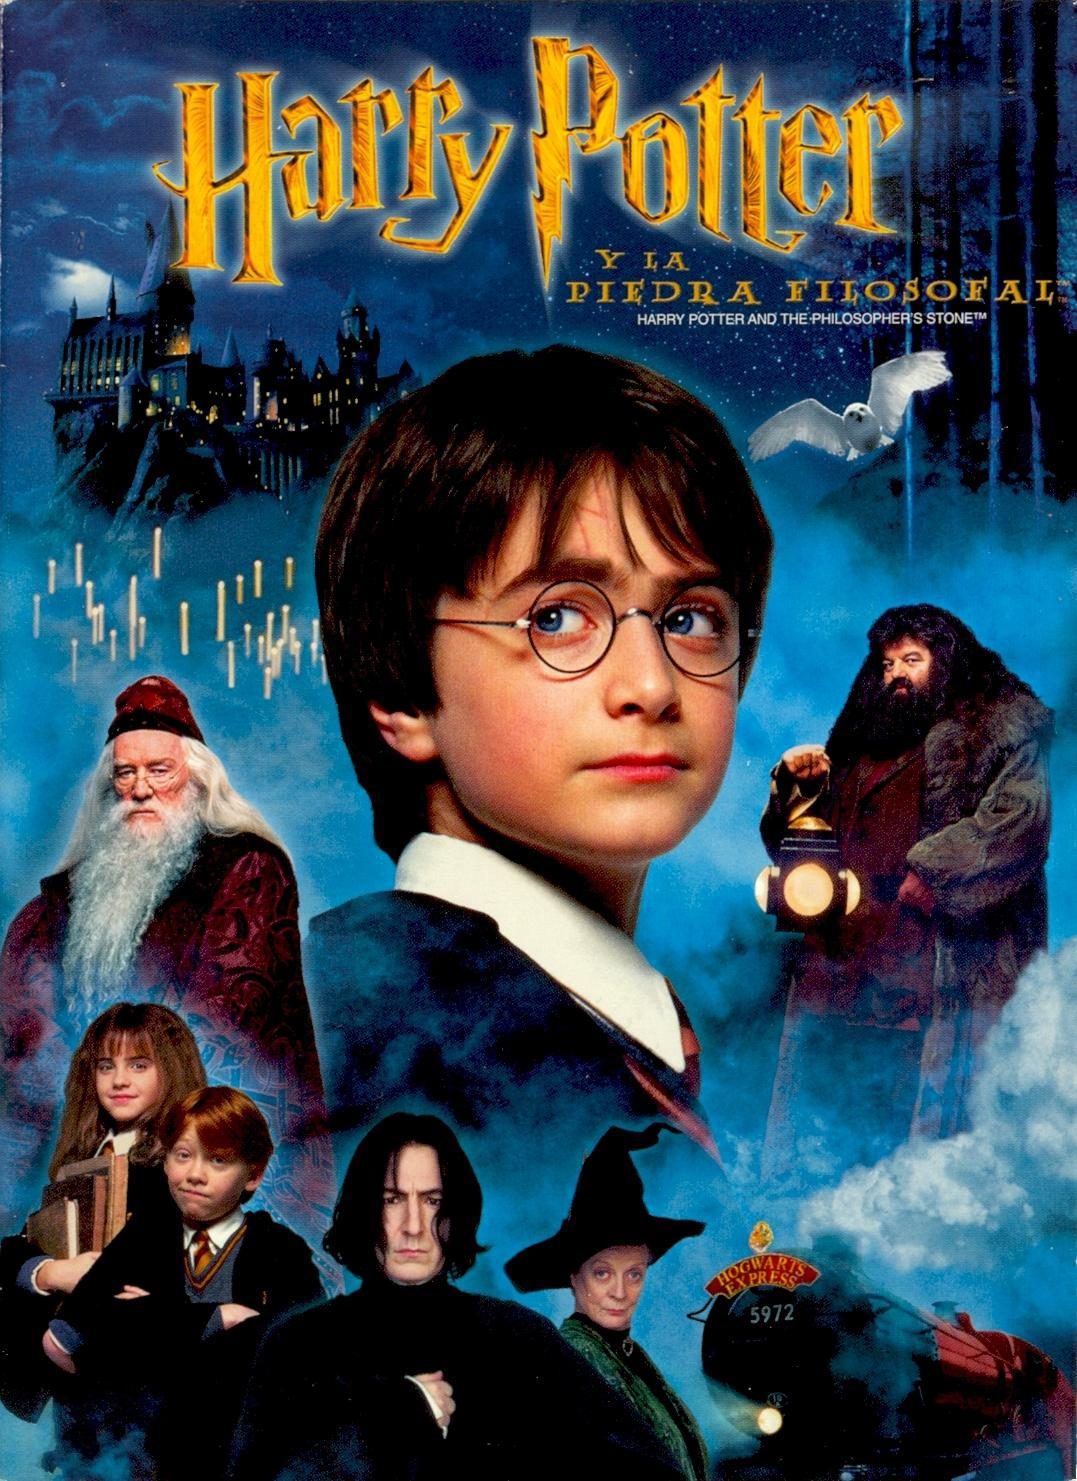 Harry Potter Libro 1 Harry Potter World Posters Peliculas